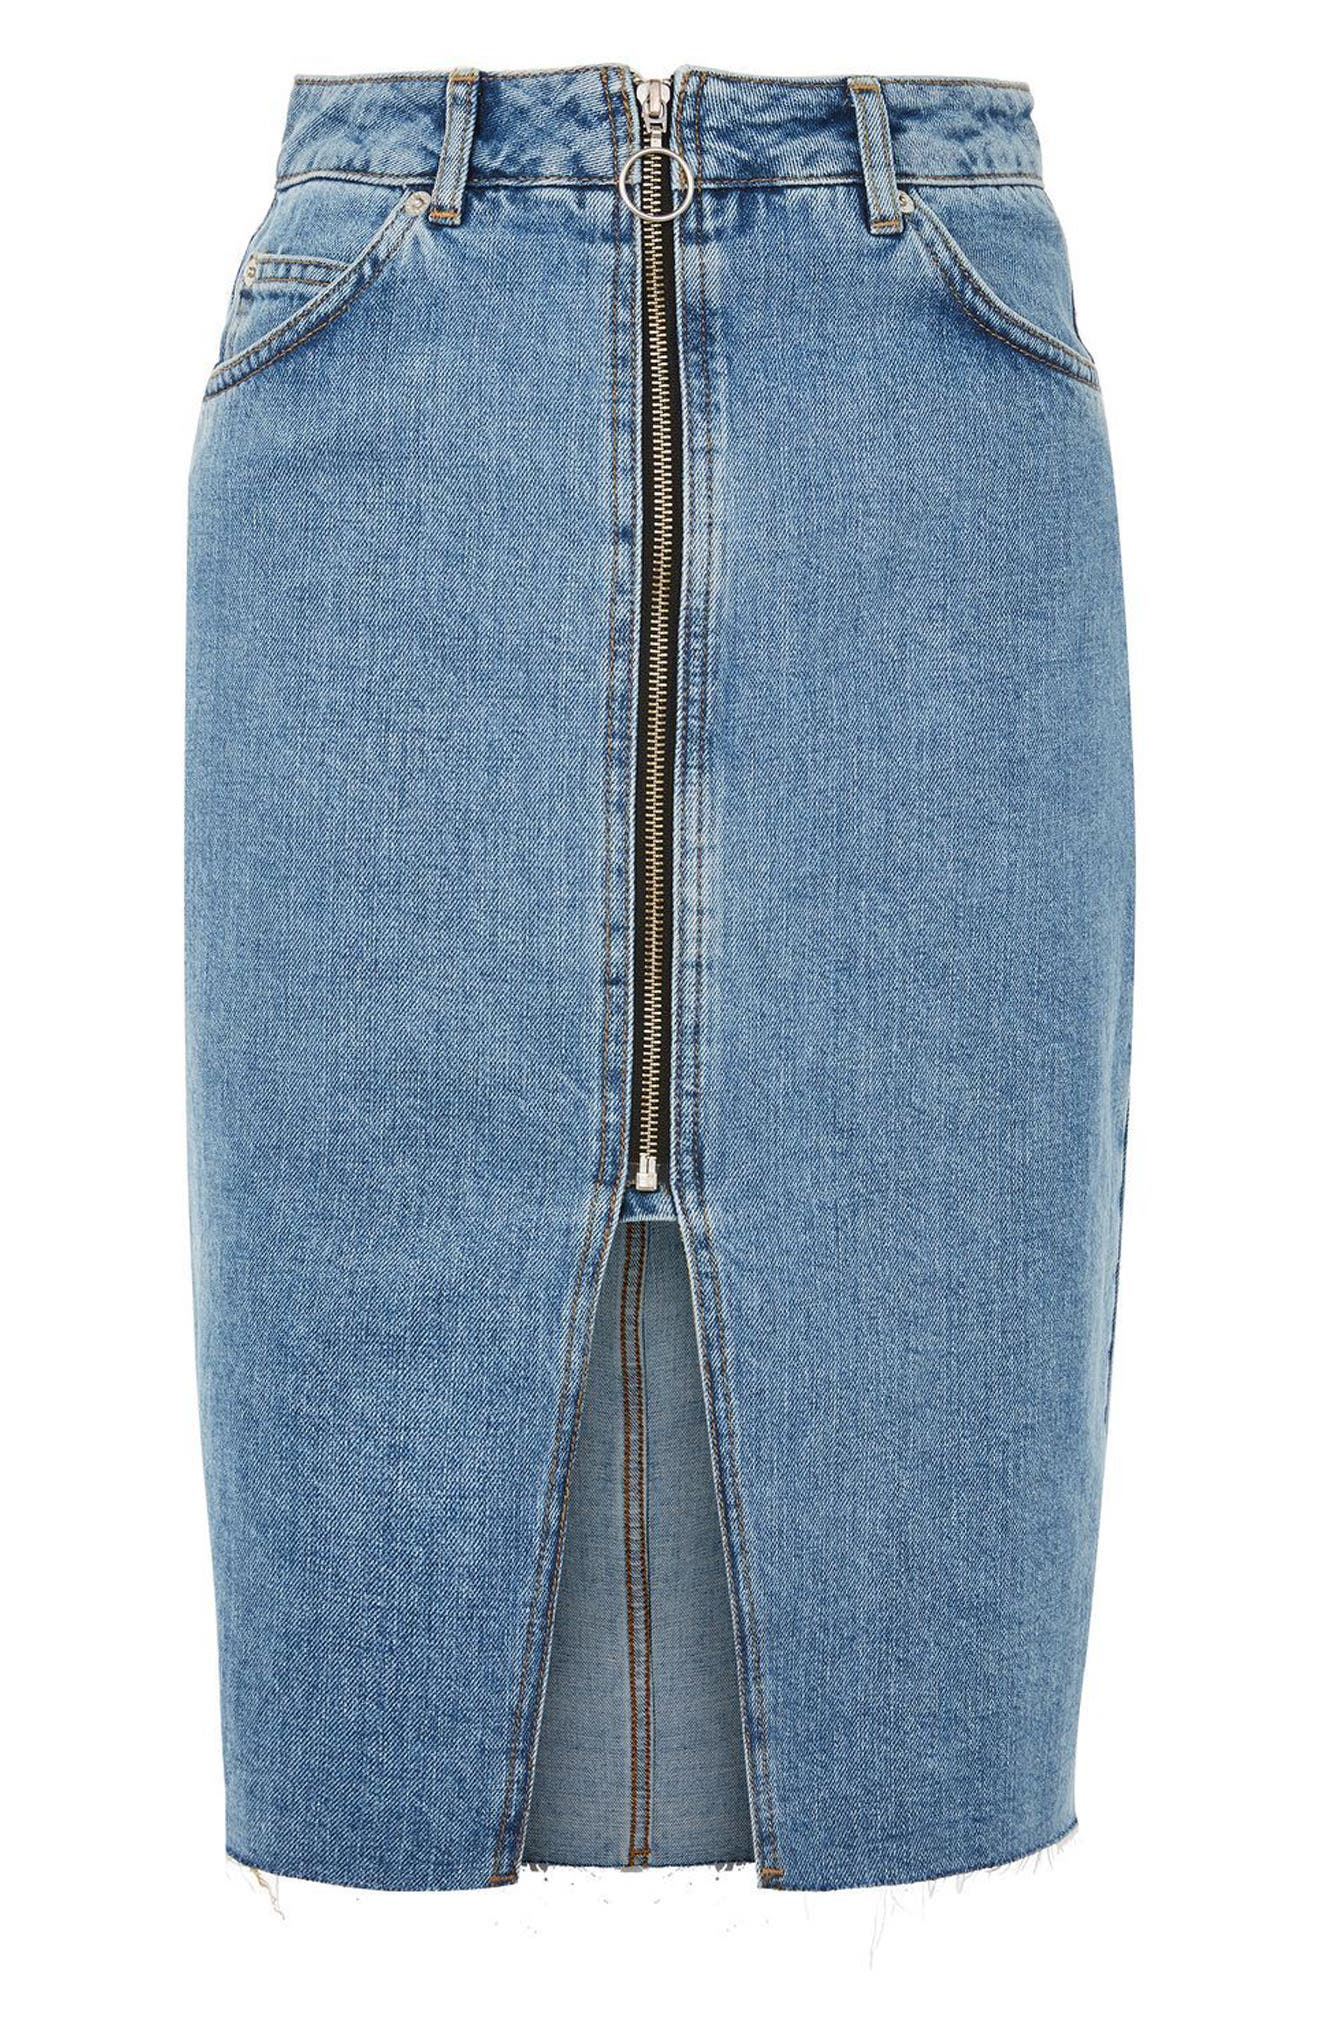 Alternate Image 1 Selected - Topshop Zip Denim Skirt